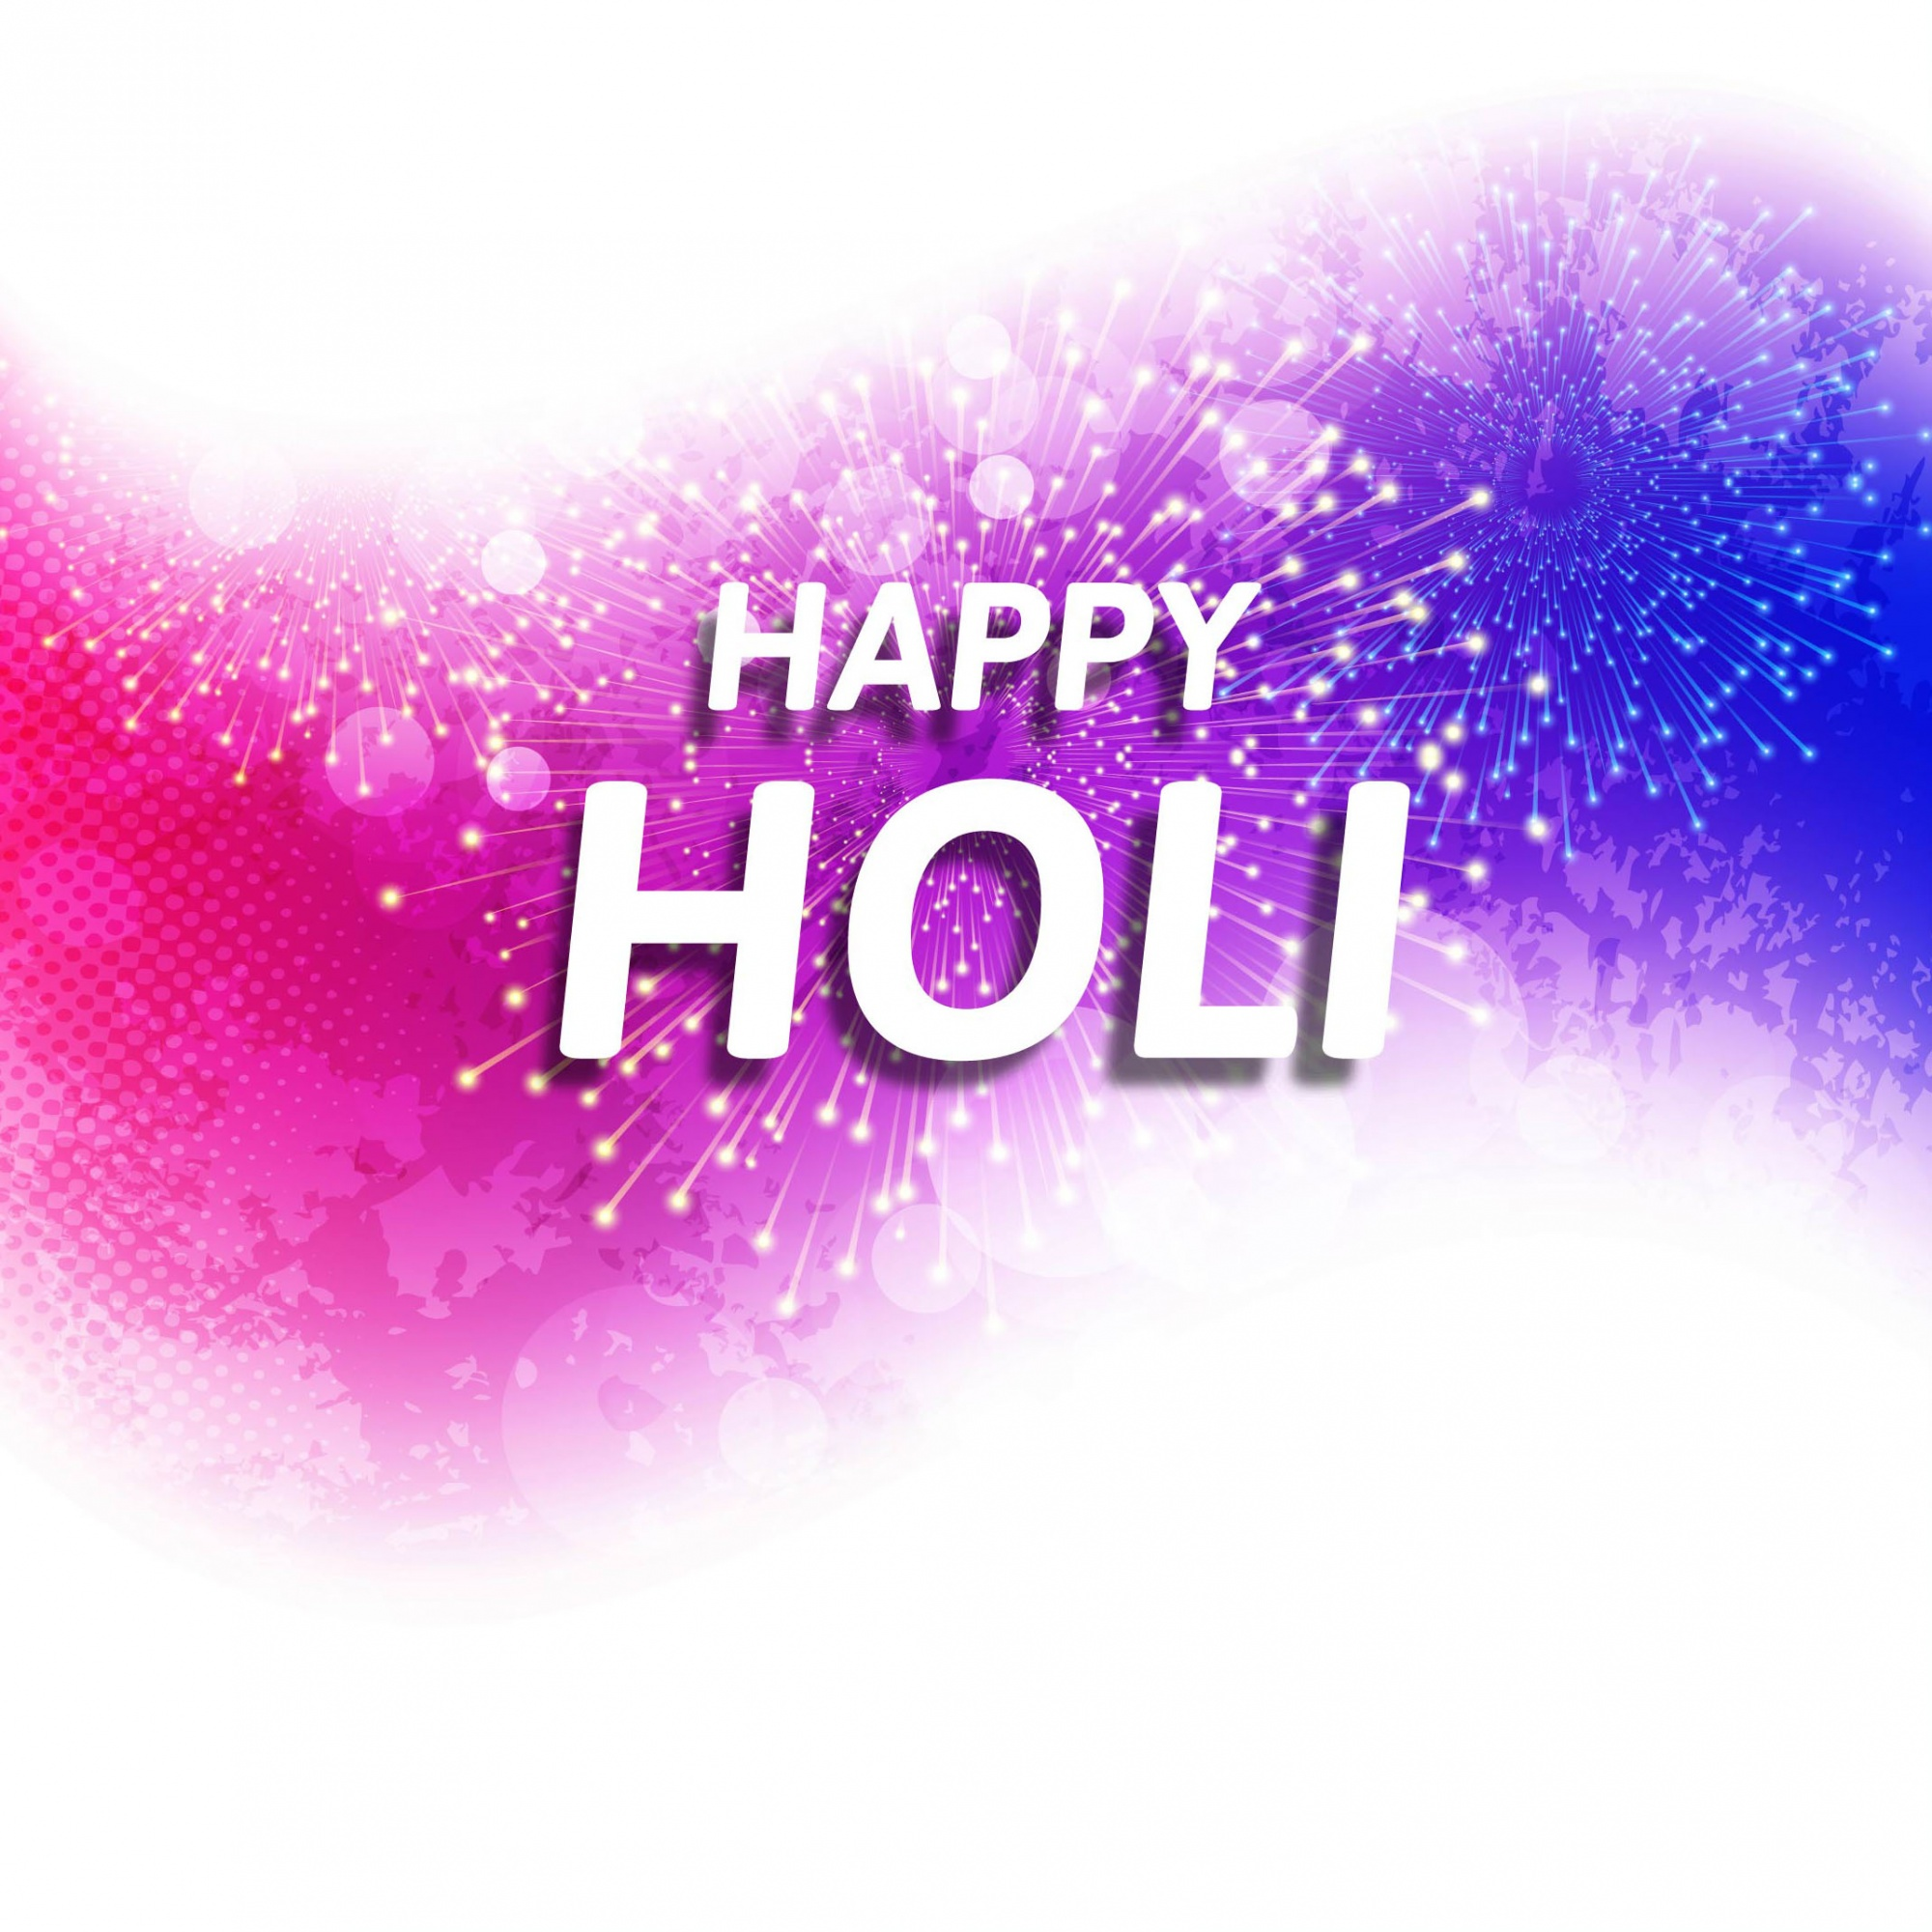 White, pink and purple background for holi festival